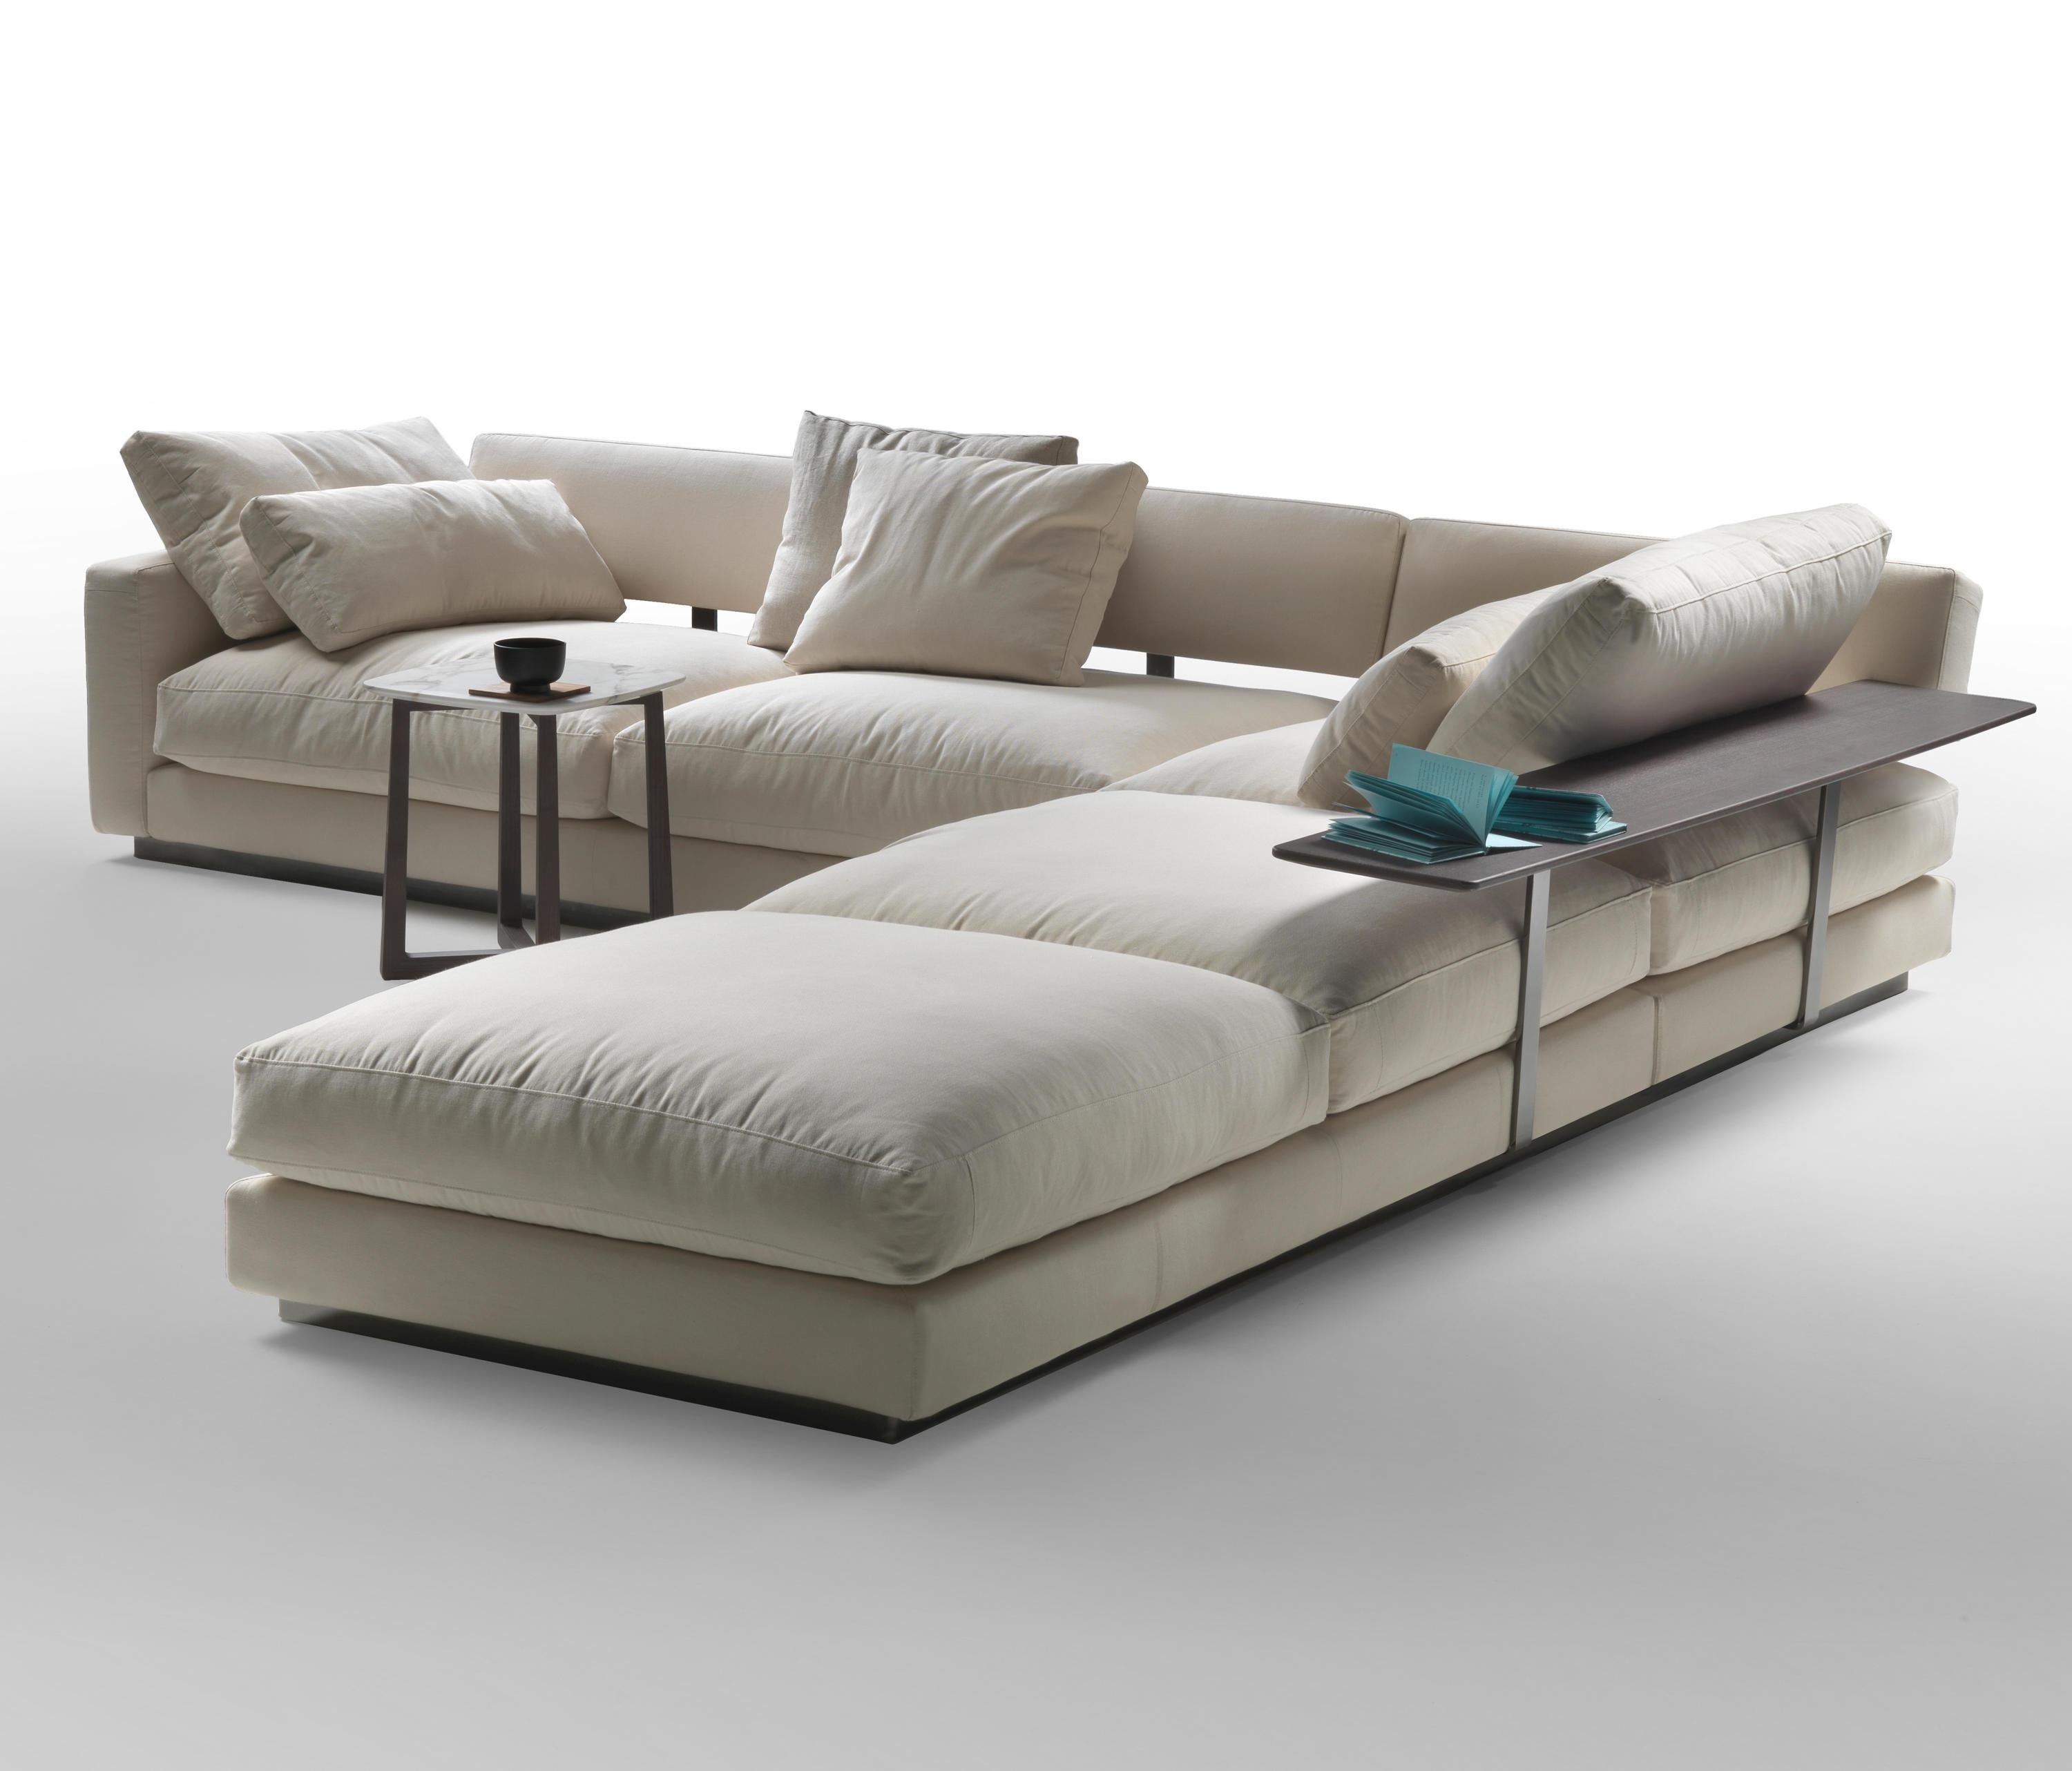 Pleasure Sectional Sofa – Modular Seating Systems From Flexform Inside Flexform Sofas (View 7 of 20)